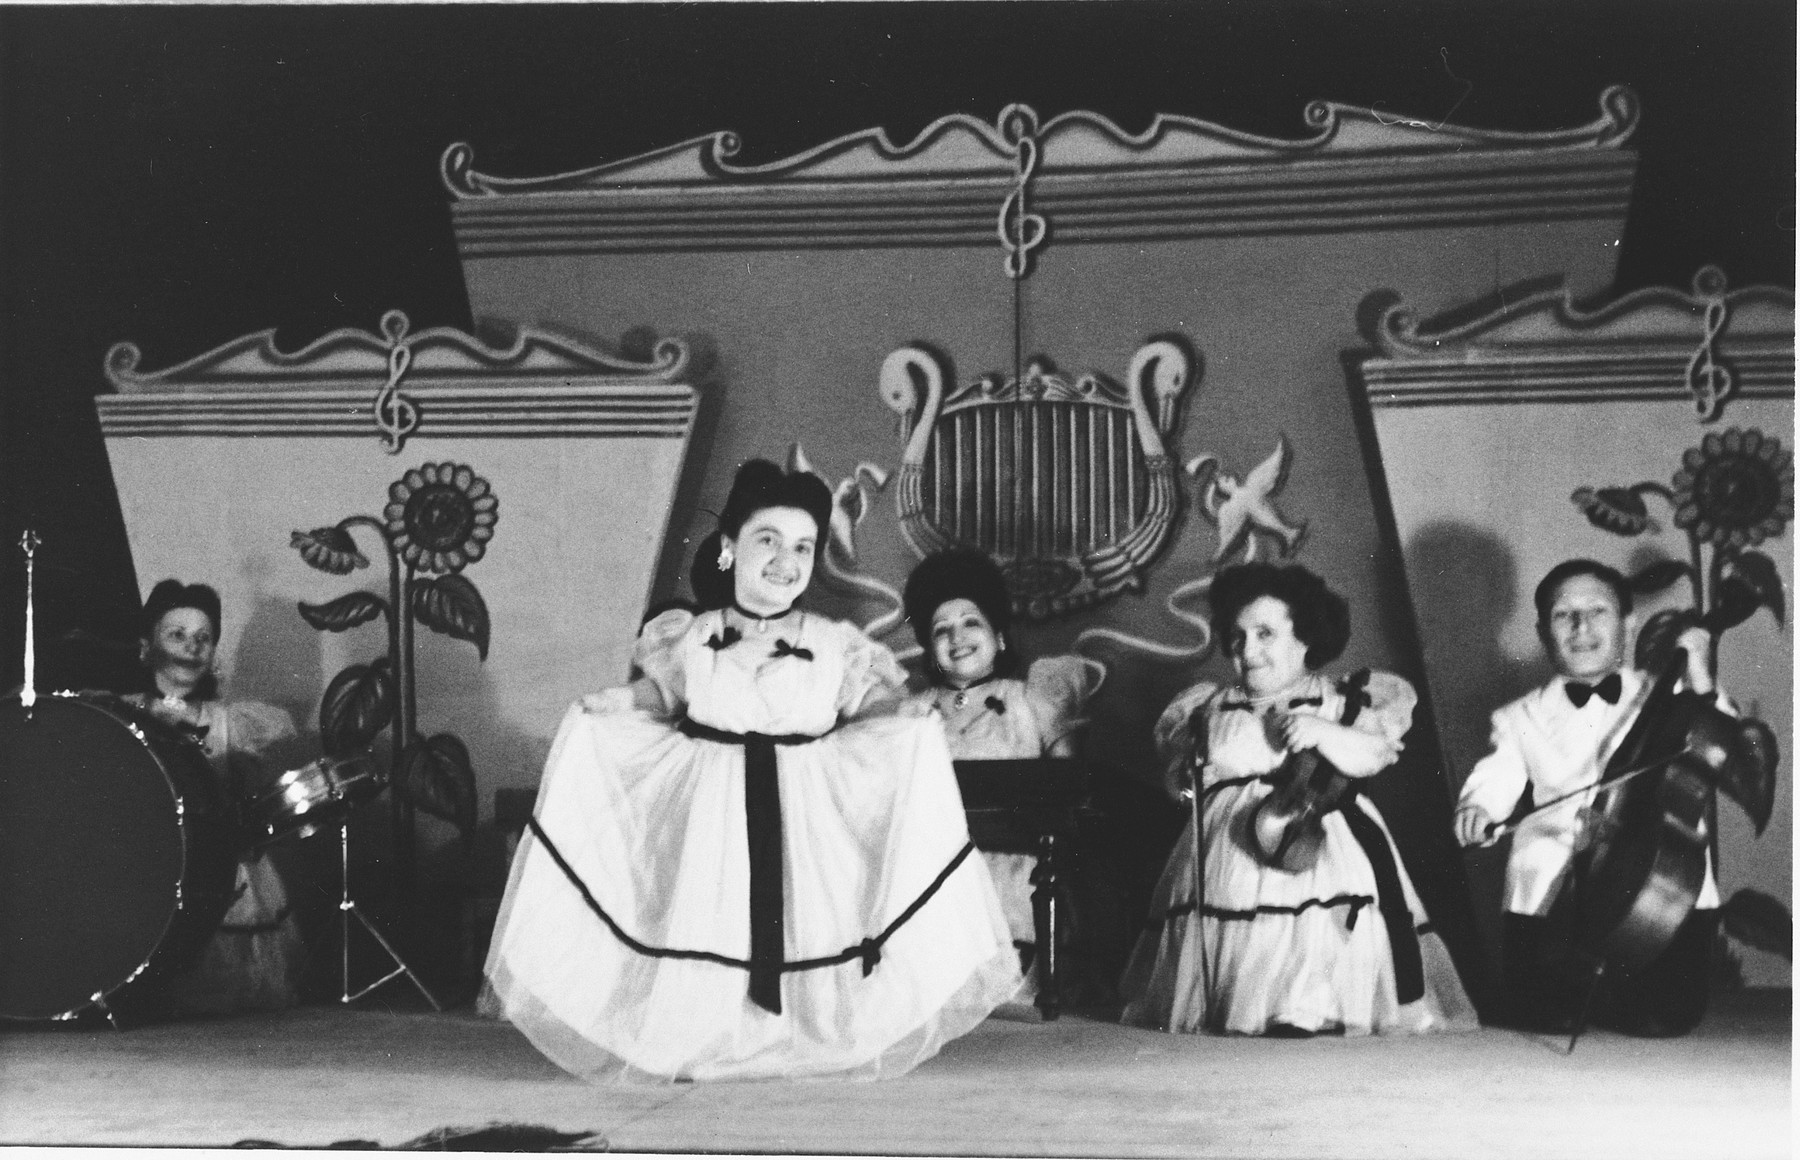 Members of the Ovici family, a family of Jewish dwarf entertainers known as the Lilliput Troupe, who survived Auschwitz, perform on stage in Israel.